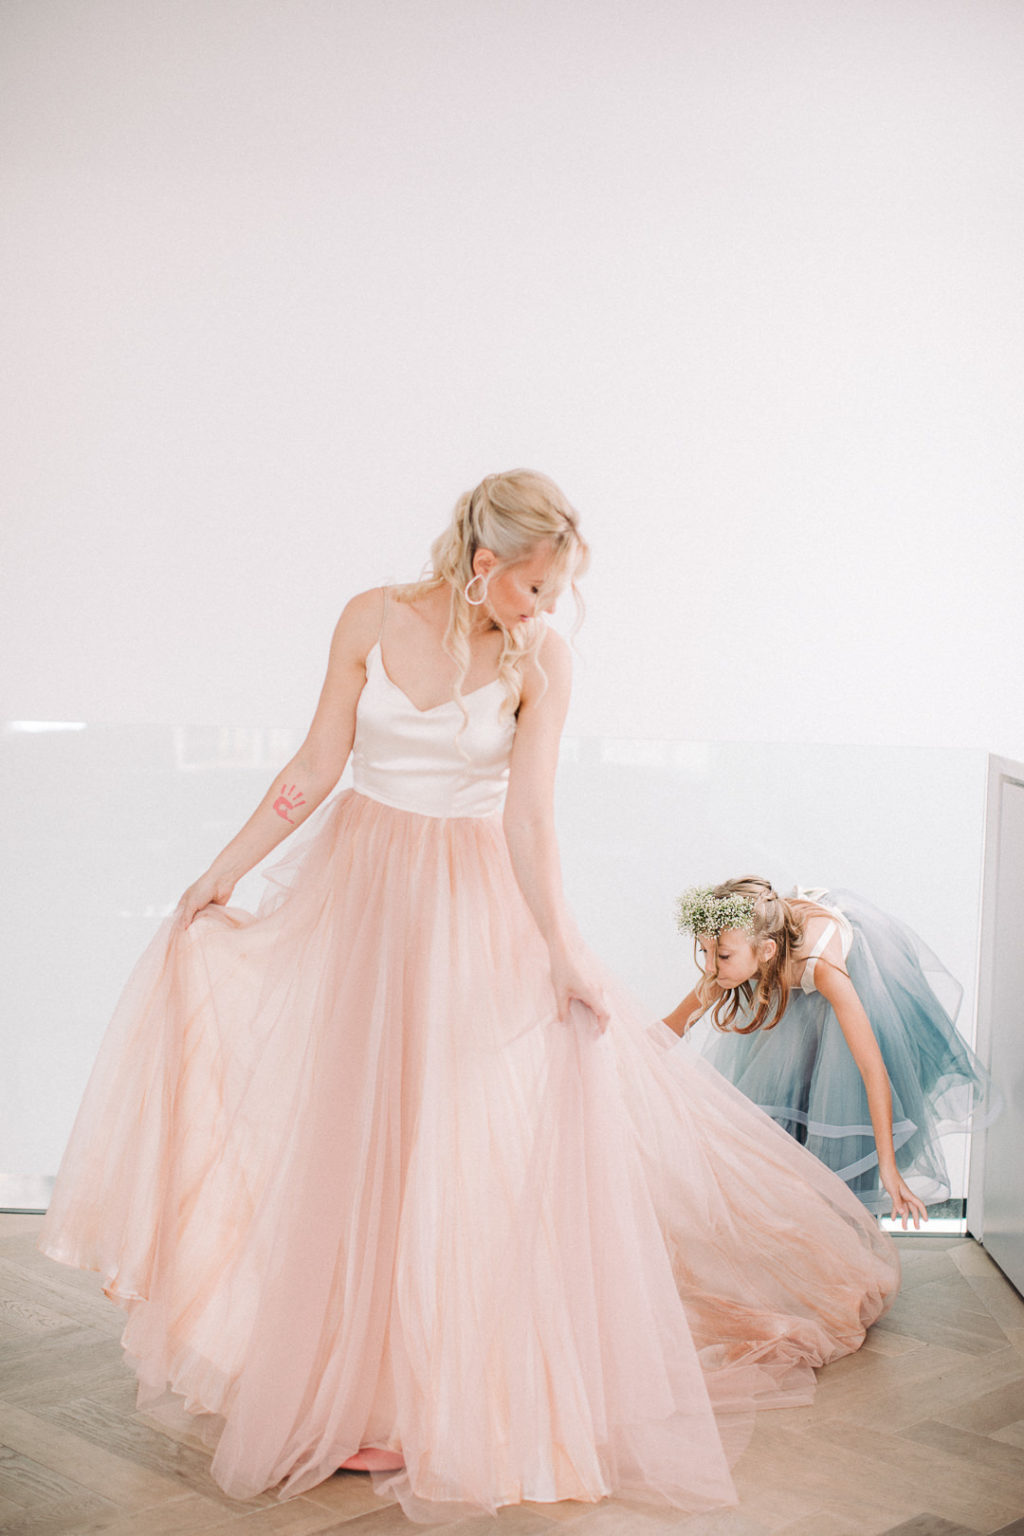 The daughter of the bride was wearing a similar ensemble but in blue